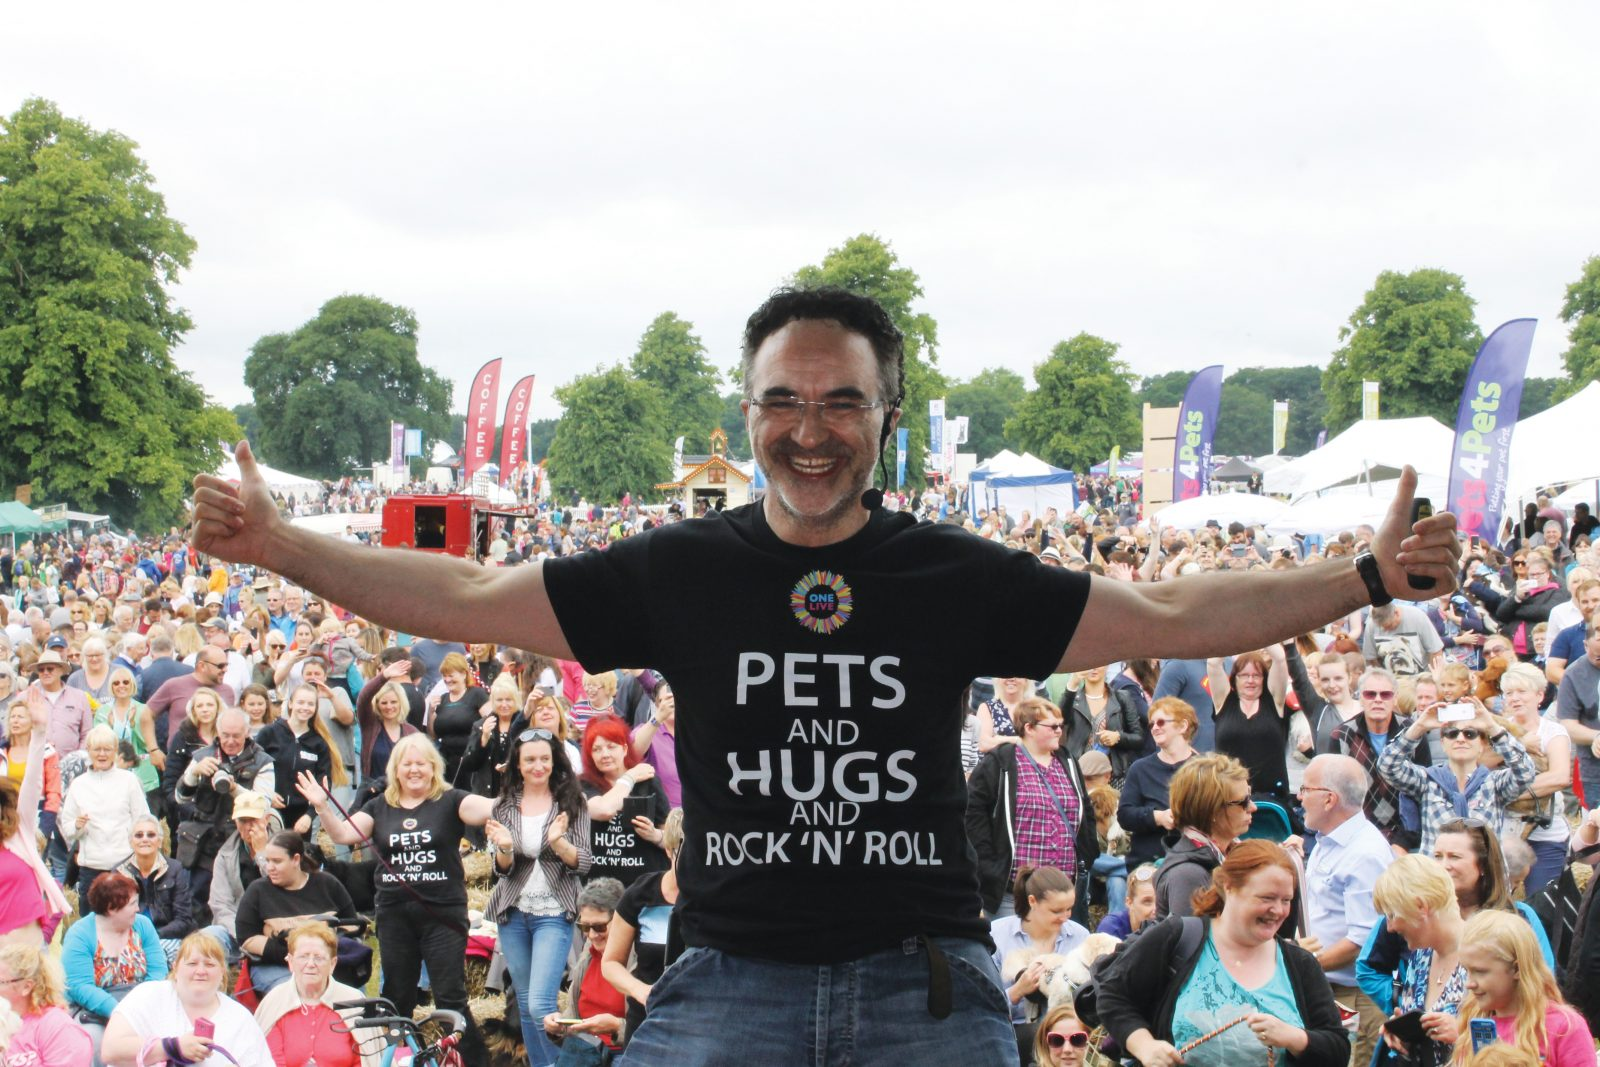 Festival fever at DogFest North